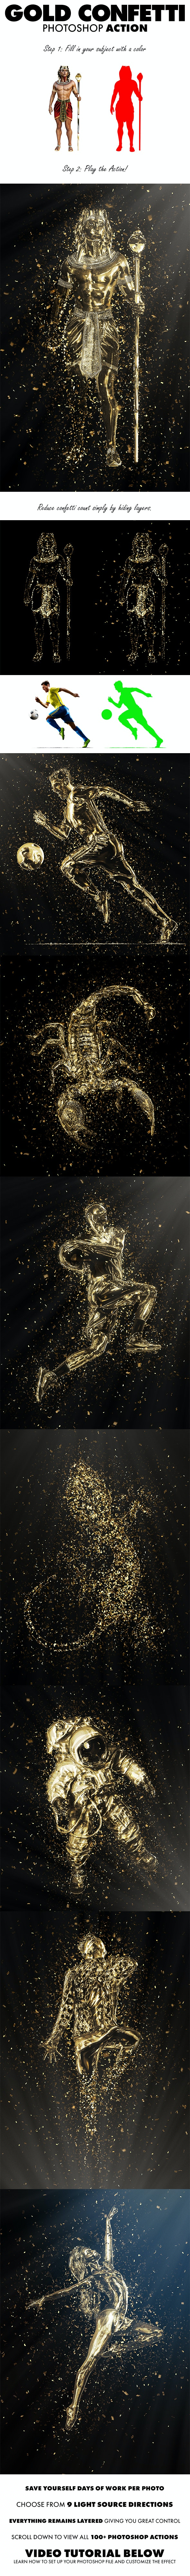 Gold Confetti Photoshop Action - Photo Effects Actions